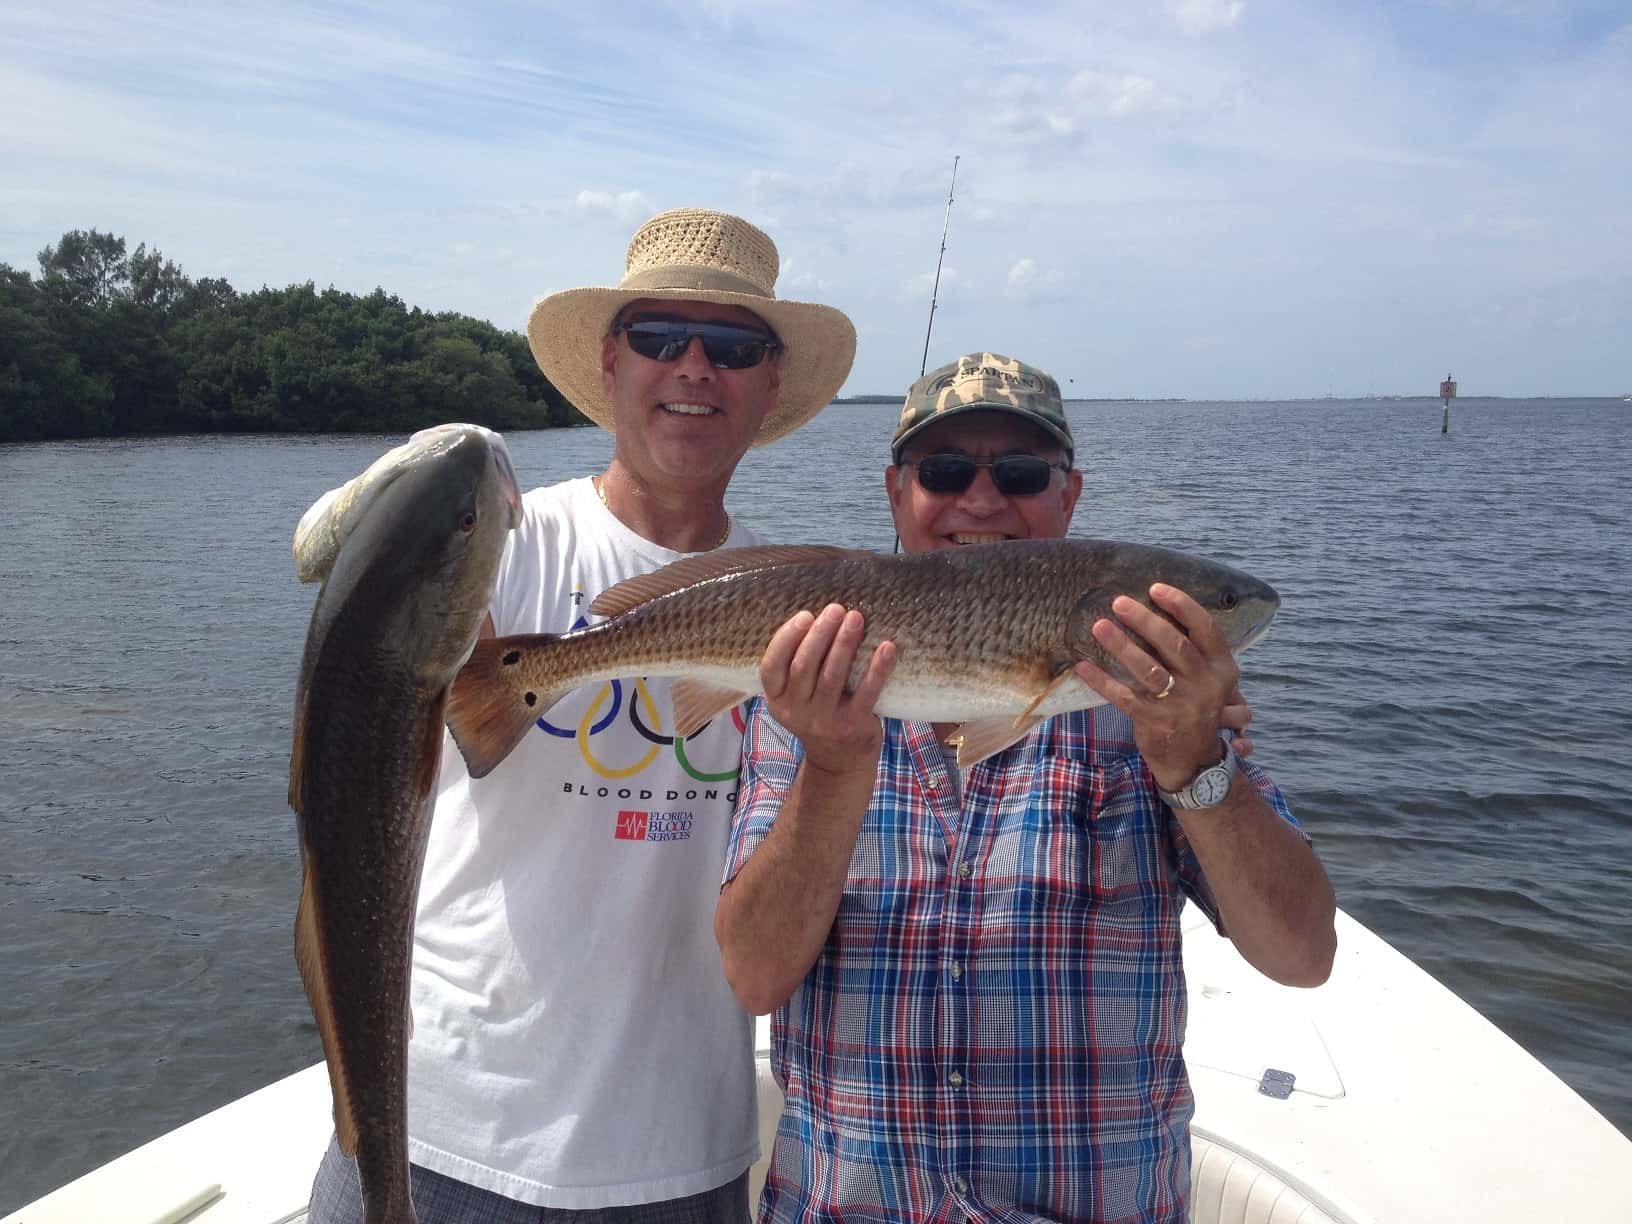 What to do in tampa bay fishing and guide service shallow for Tampa bay fishing guides